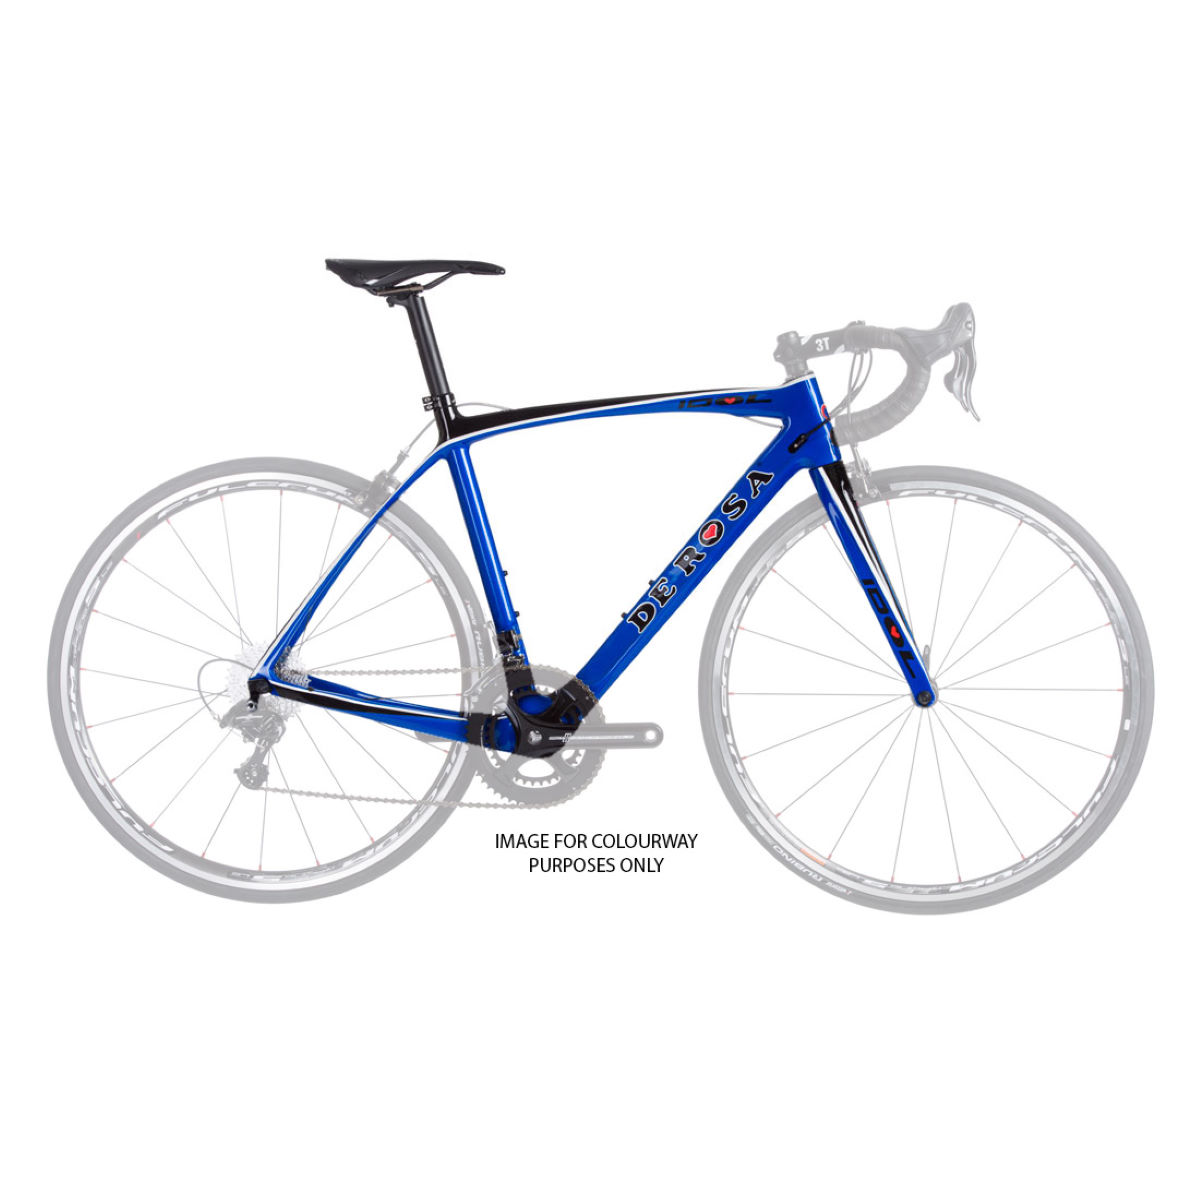 De rosa idol chorus 2017 road bike internal blue gloss 2017 deridolbkchorqbg47 0